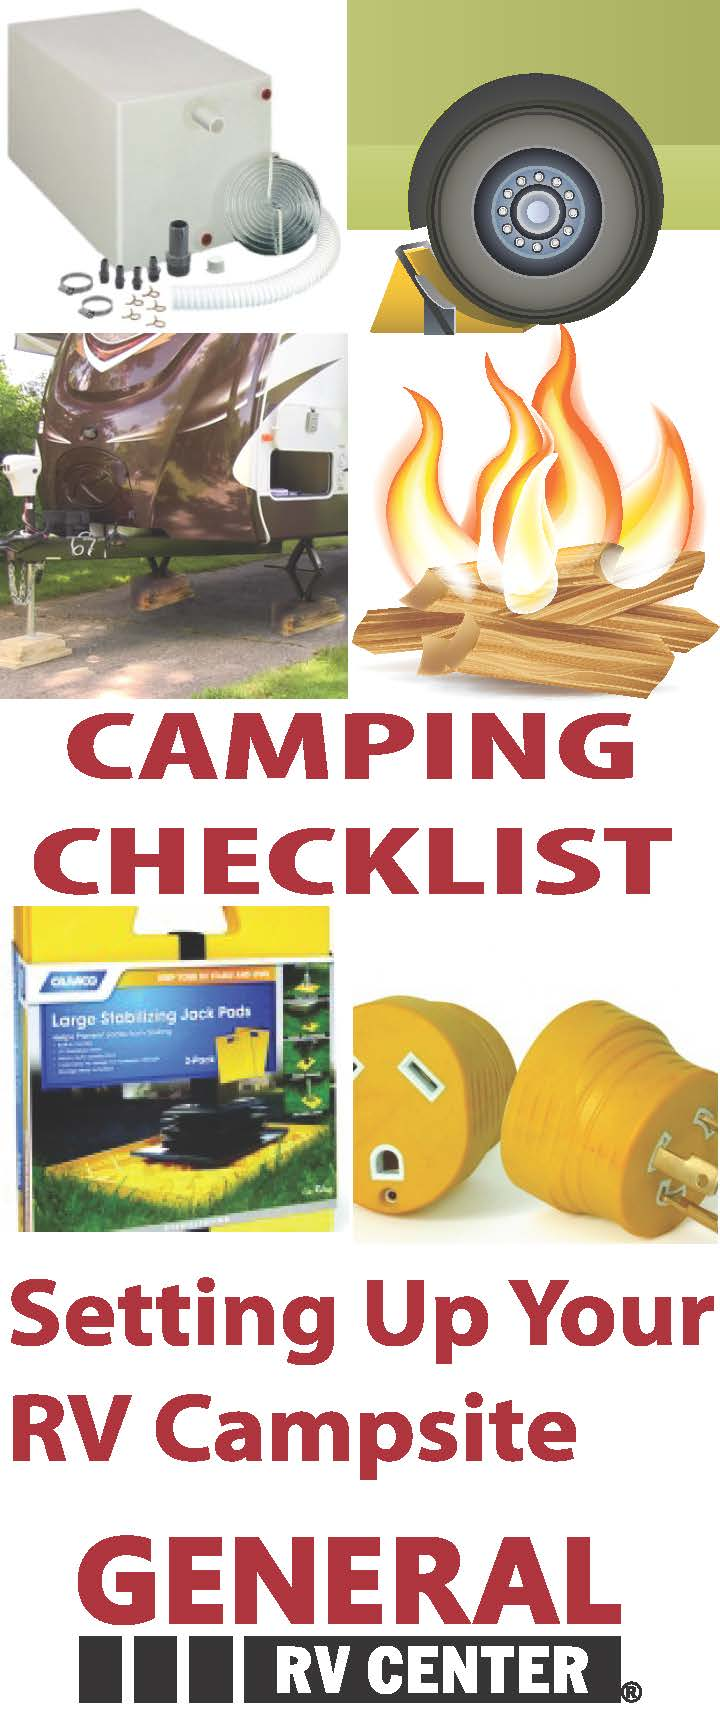 Original CAMPER TRAILER STORAGE IDEAS  CAMPING TIPS AND TRICKS